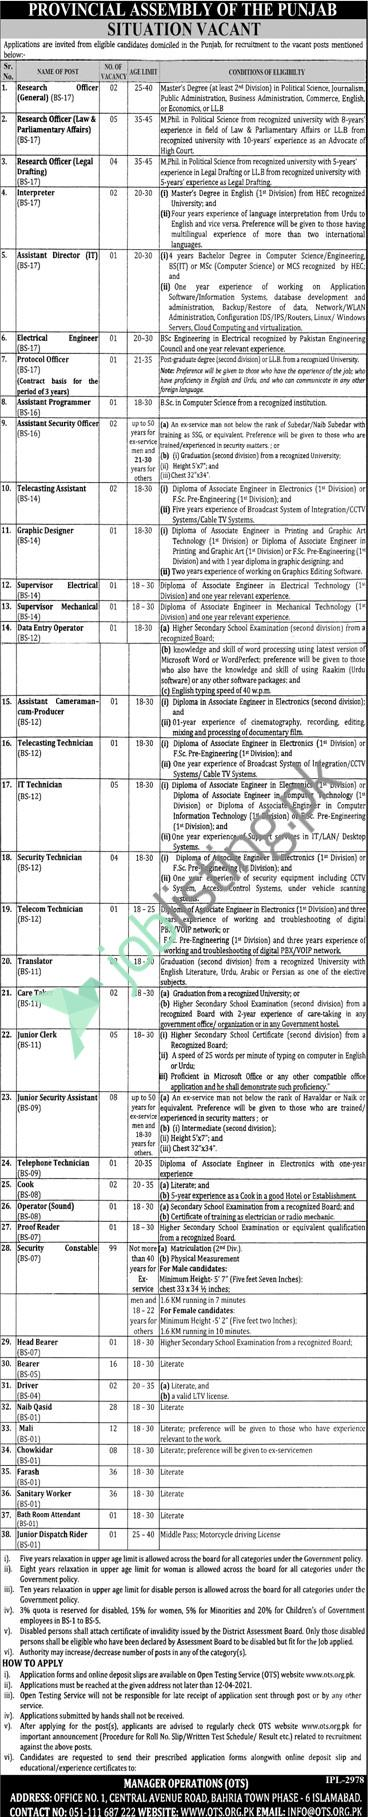 Provincial Assembly of Punjab Jobs 2021